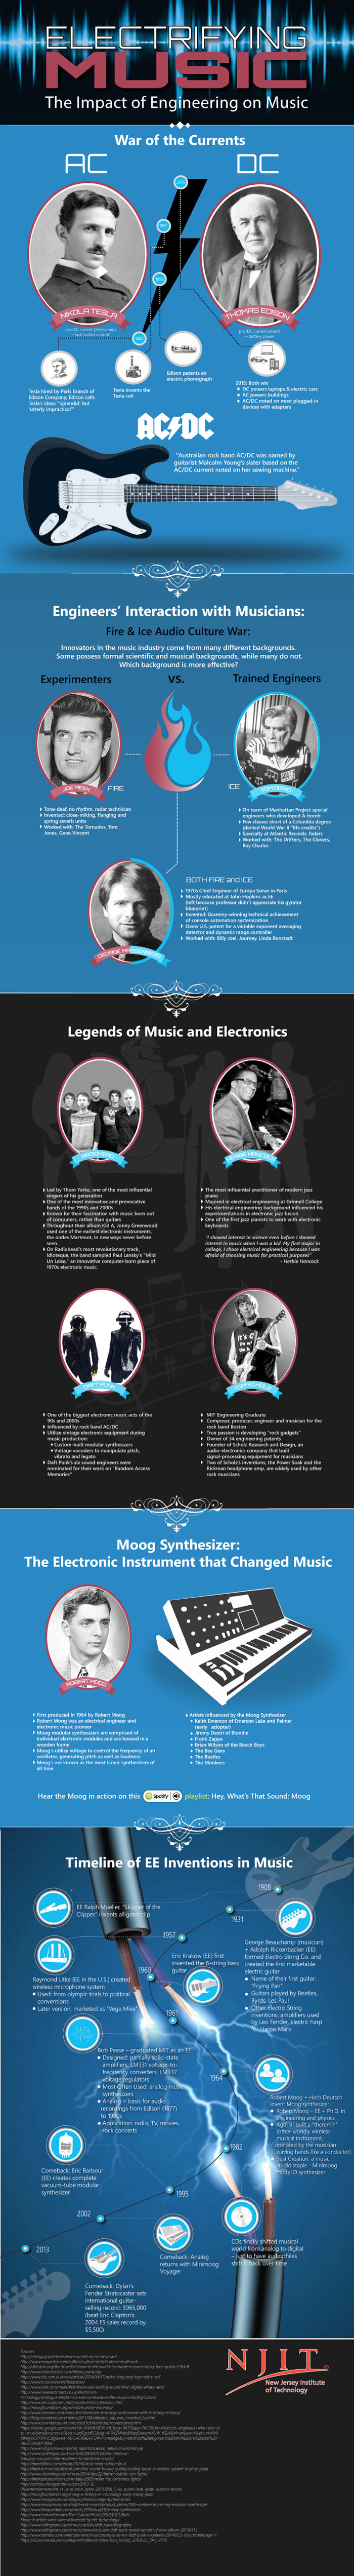 Electrifying Music - The Impact of Engineering on Music Infographic